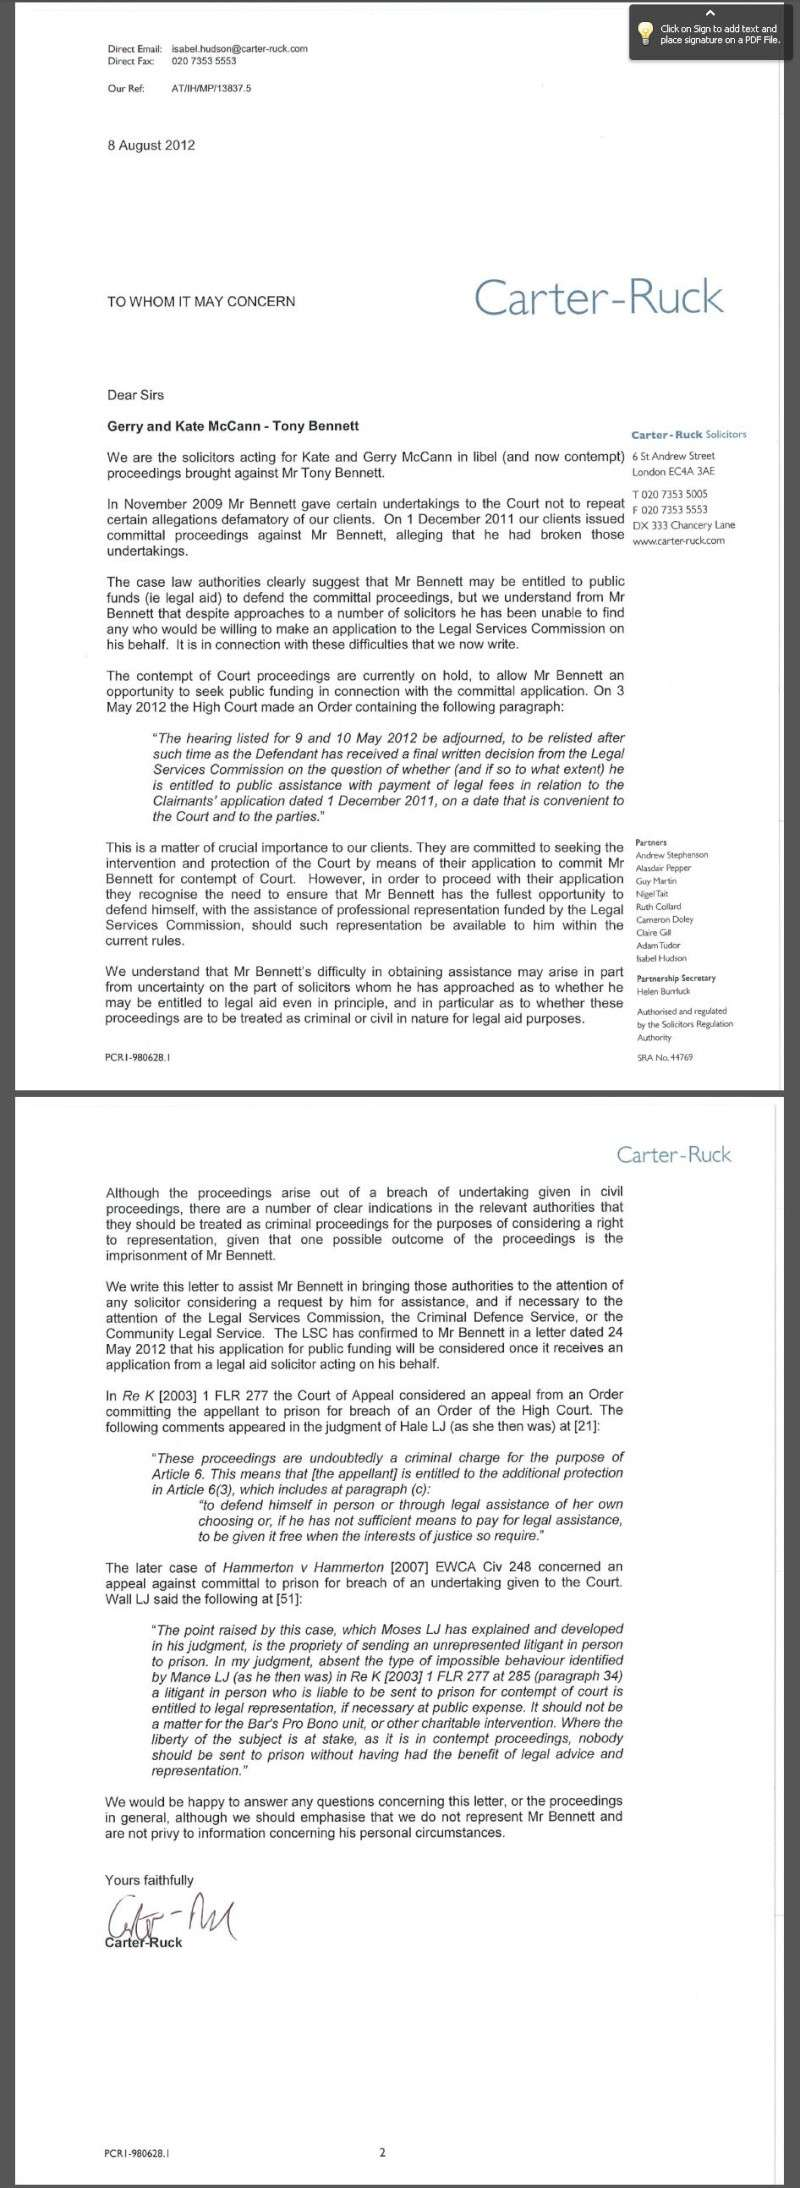 Legal Services Commission's blunder re Legal Aid - The actual letter ++PLUS++ Carter-Ruck's 'To Whom it May Concern' Letter Cr_let11